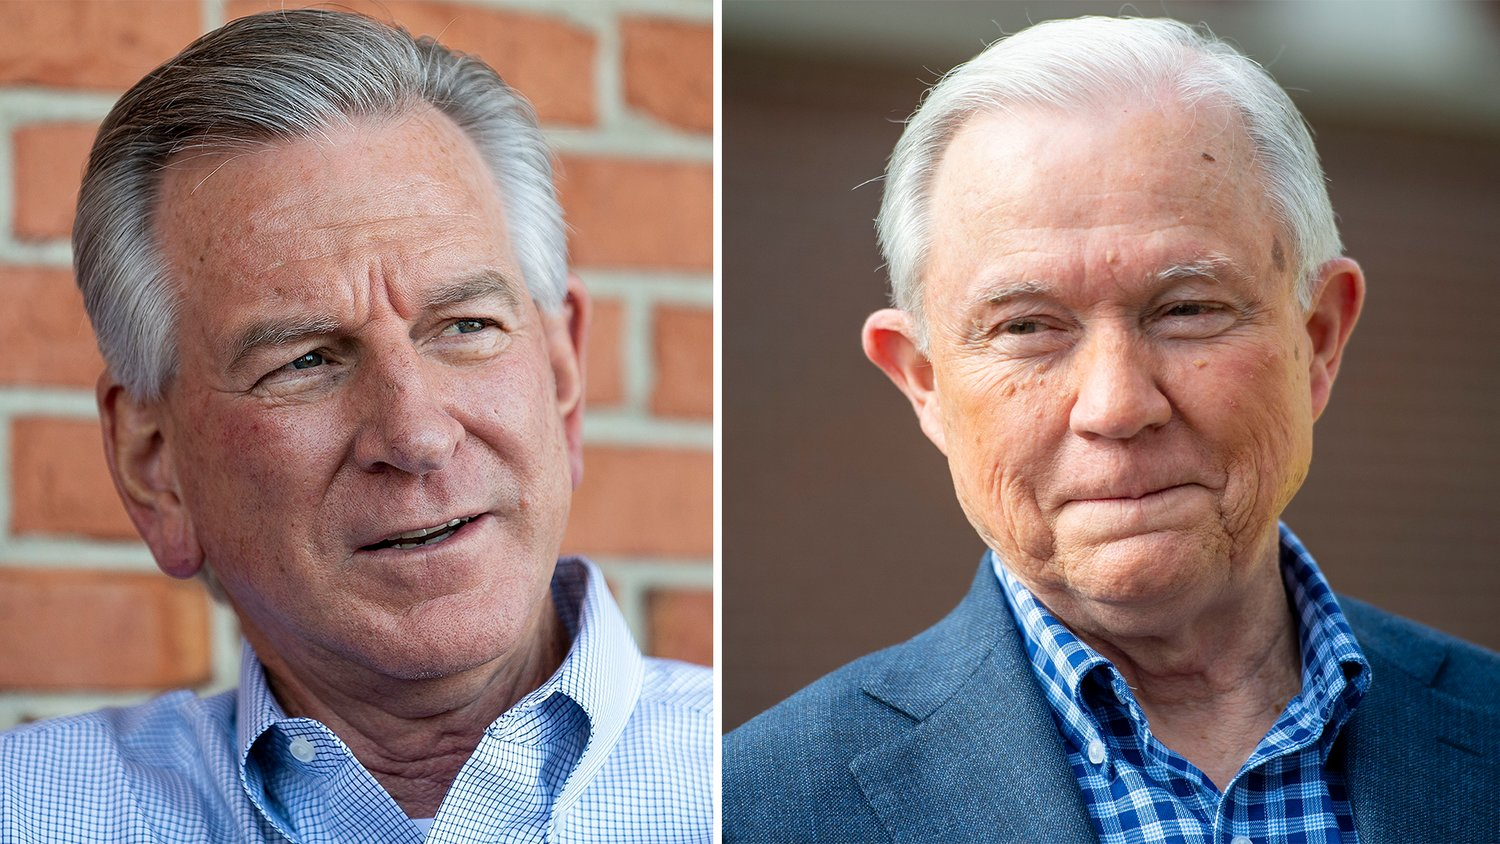 Both Republican candidates for U.S. Senate, Tommy Tubberville (left) and Jeff Sessions (right), support having a stimulus package for the American people during the COVID-19 outbreak.